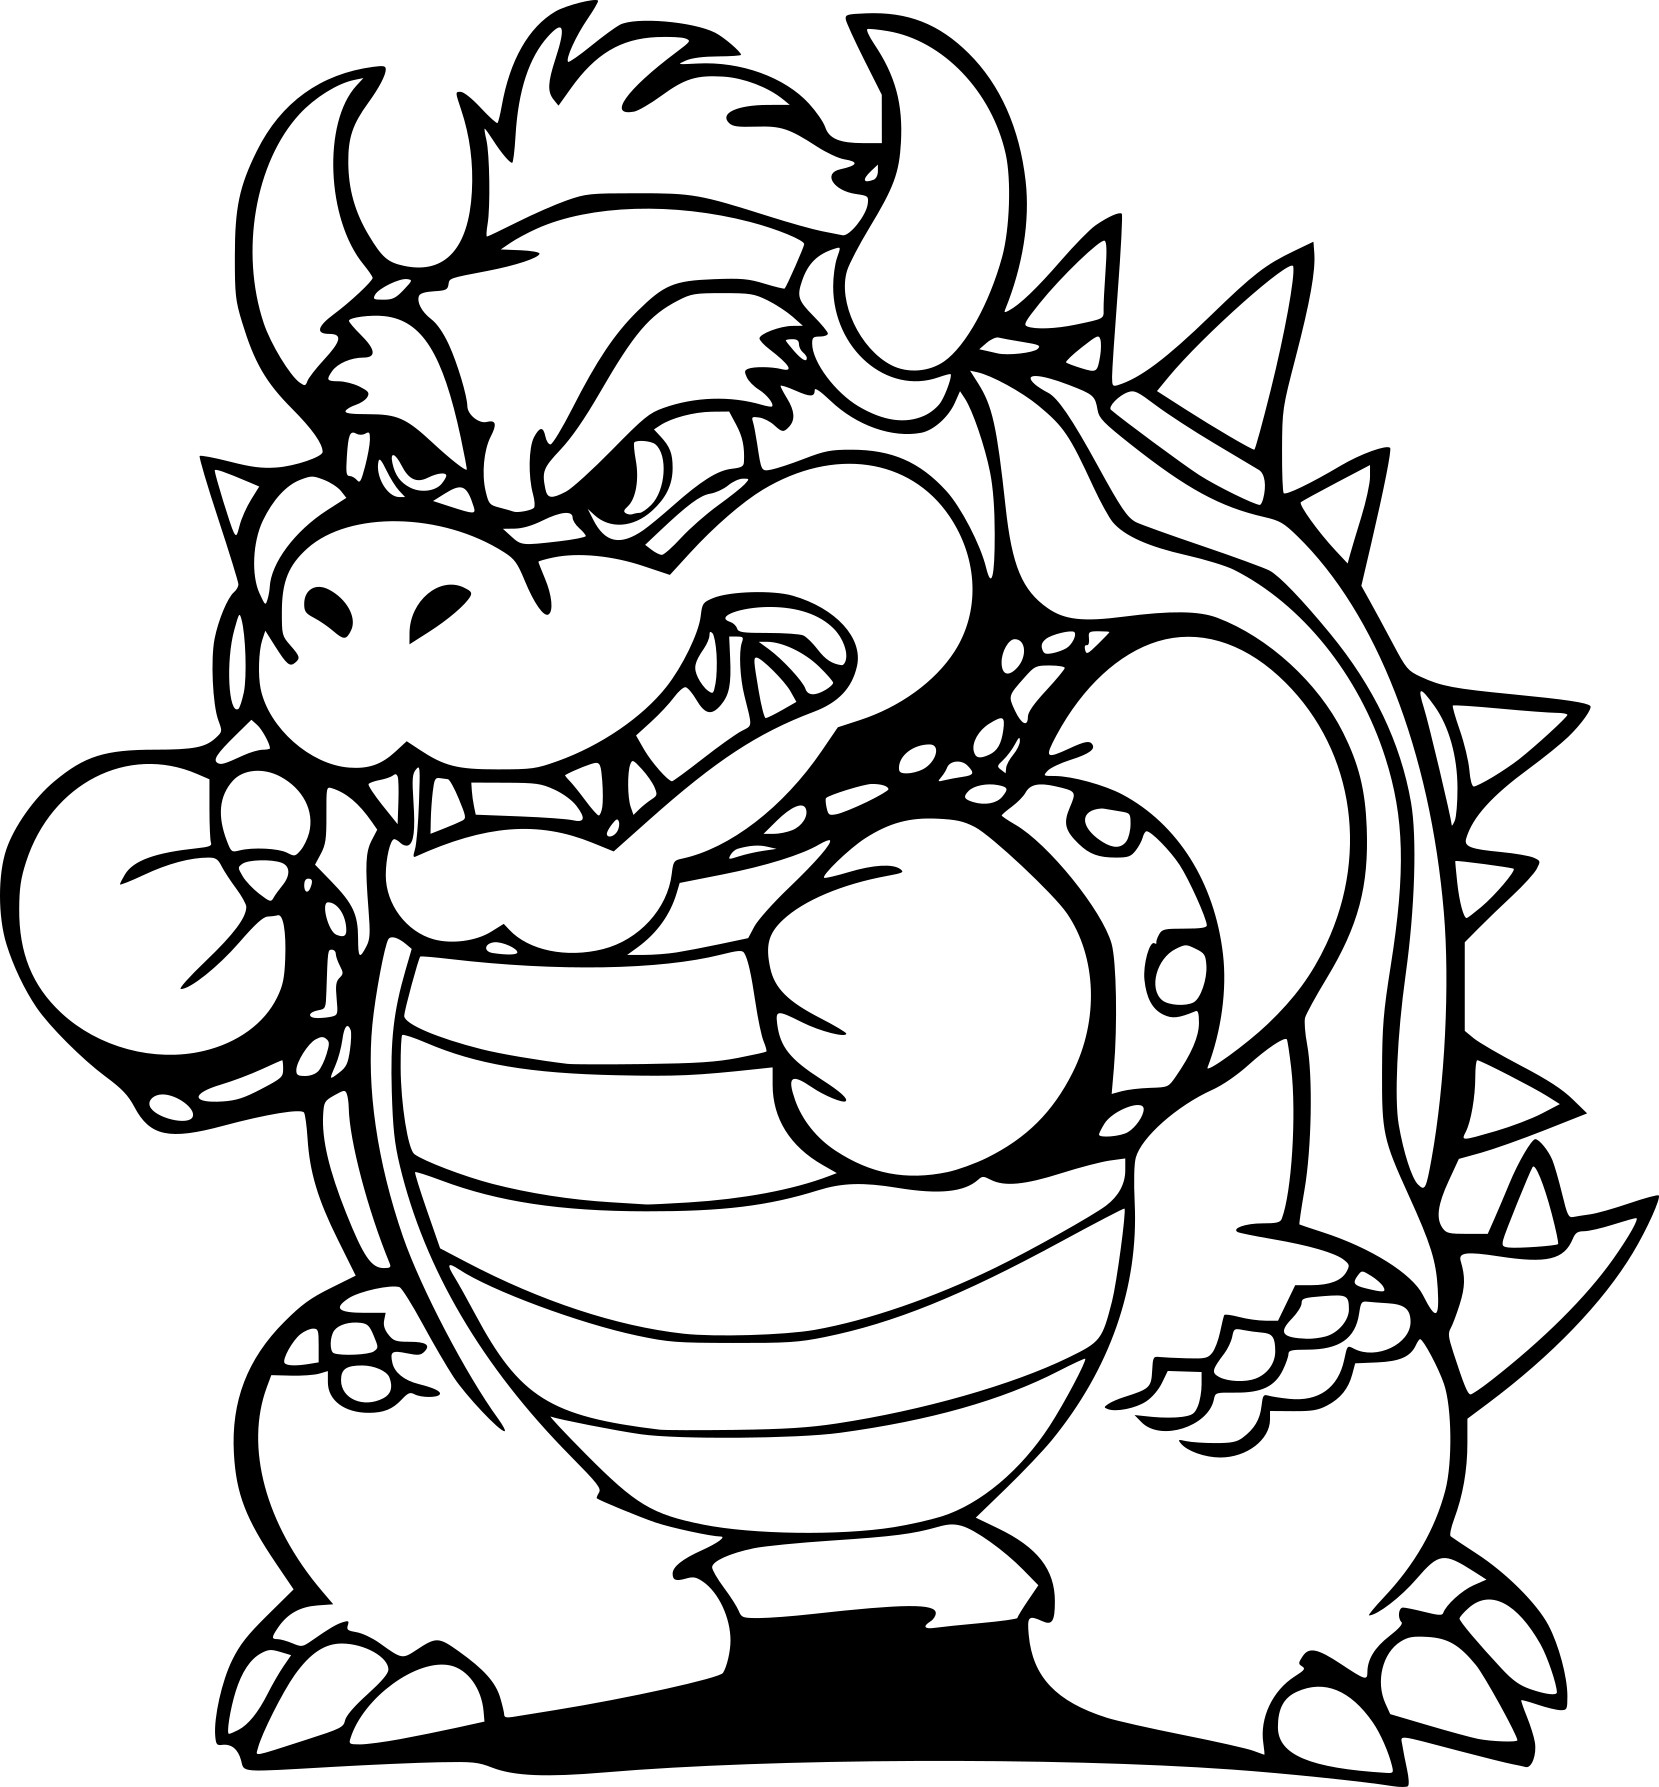 coloriage bowser et dessin imprimer. Black Bedroom Furniture Sets. Home Design Ideas